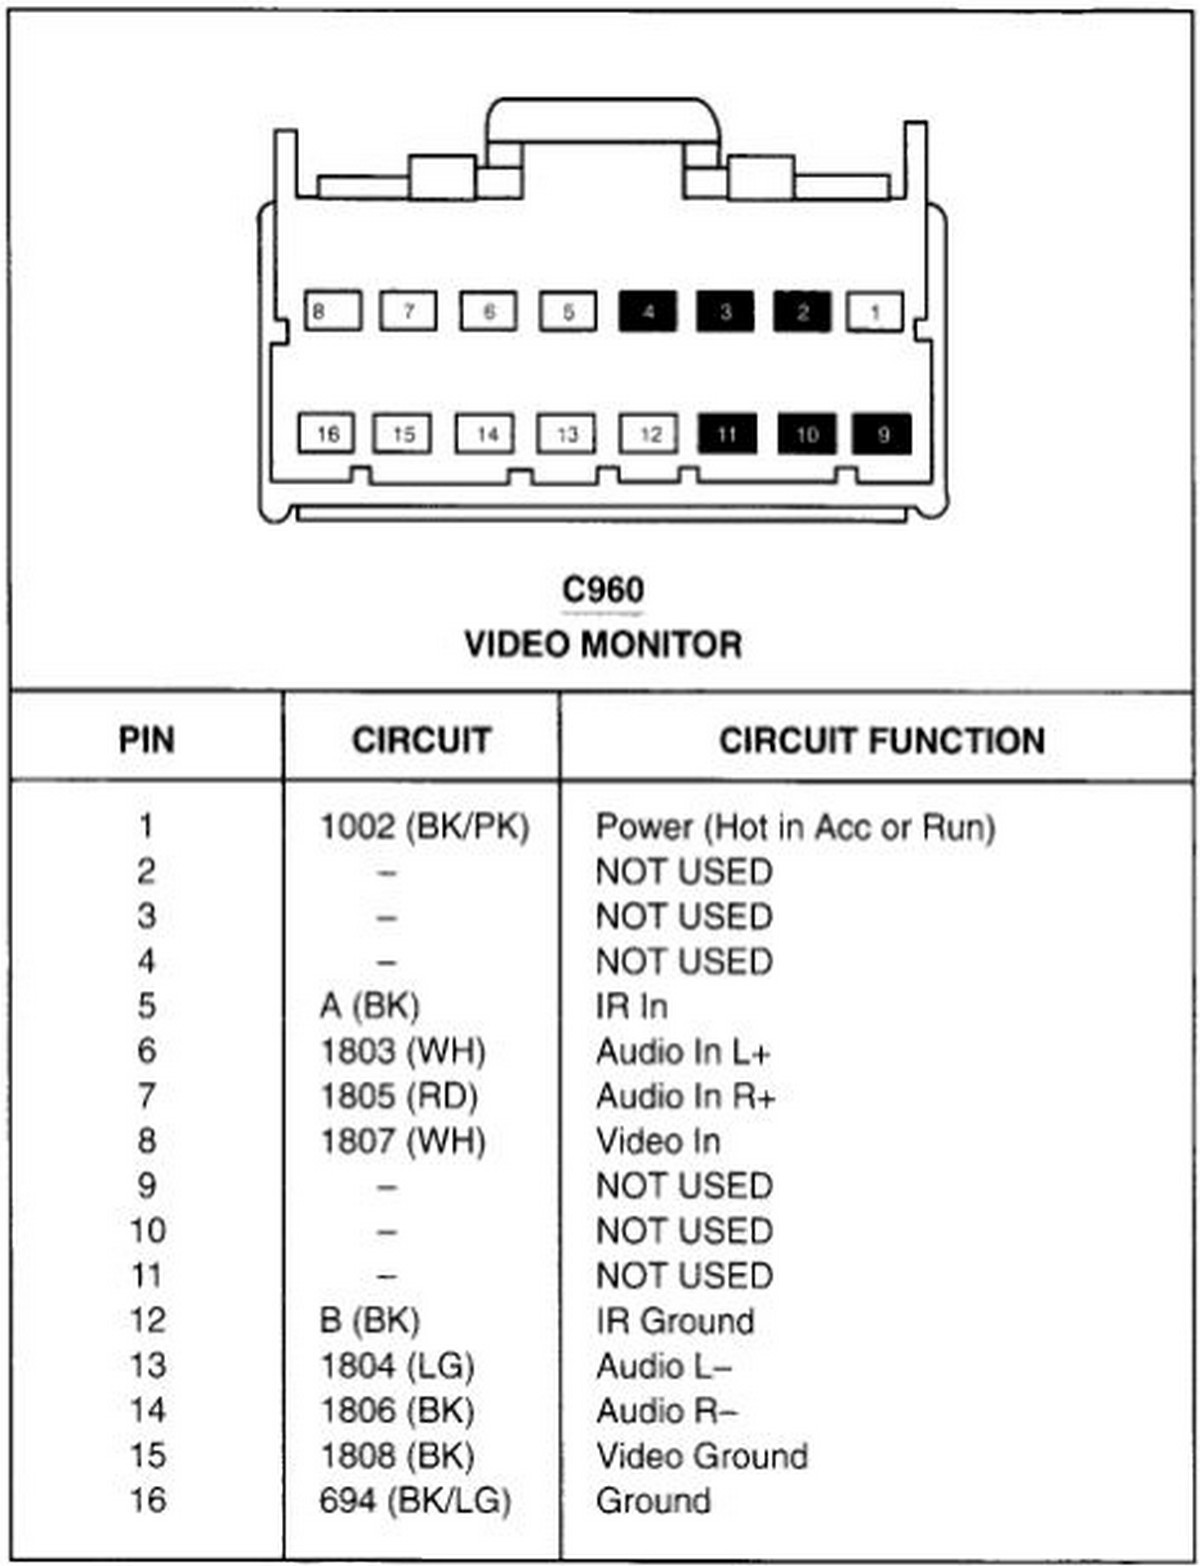 1994 Ford F150 Stereo Wiring Diagram Manual Of 2001 F 150 Xlt Car Radio Audio Autoradio